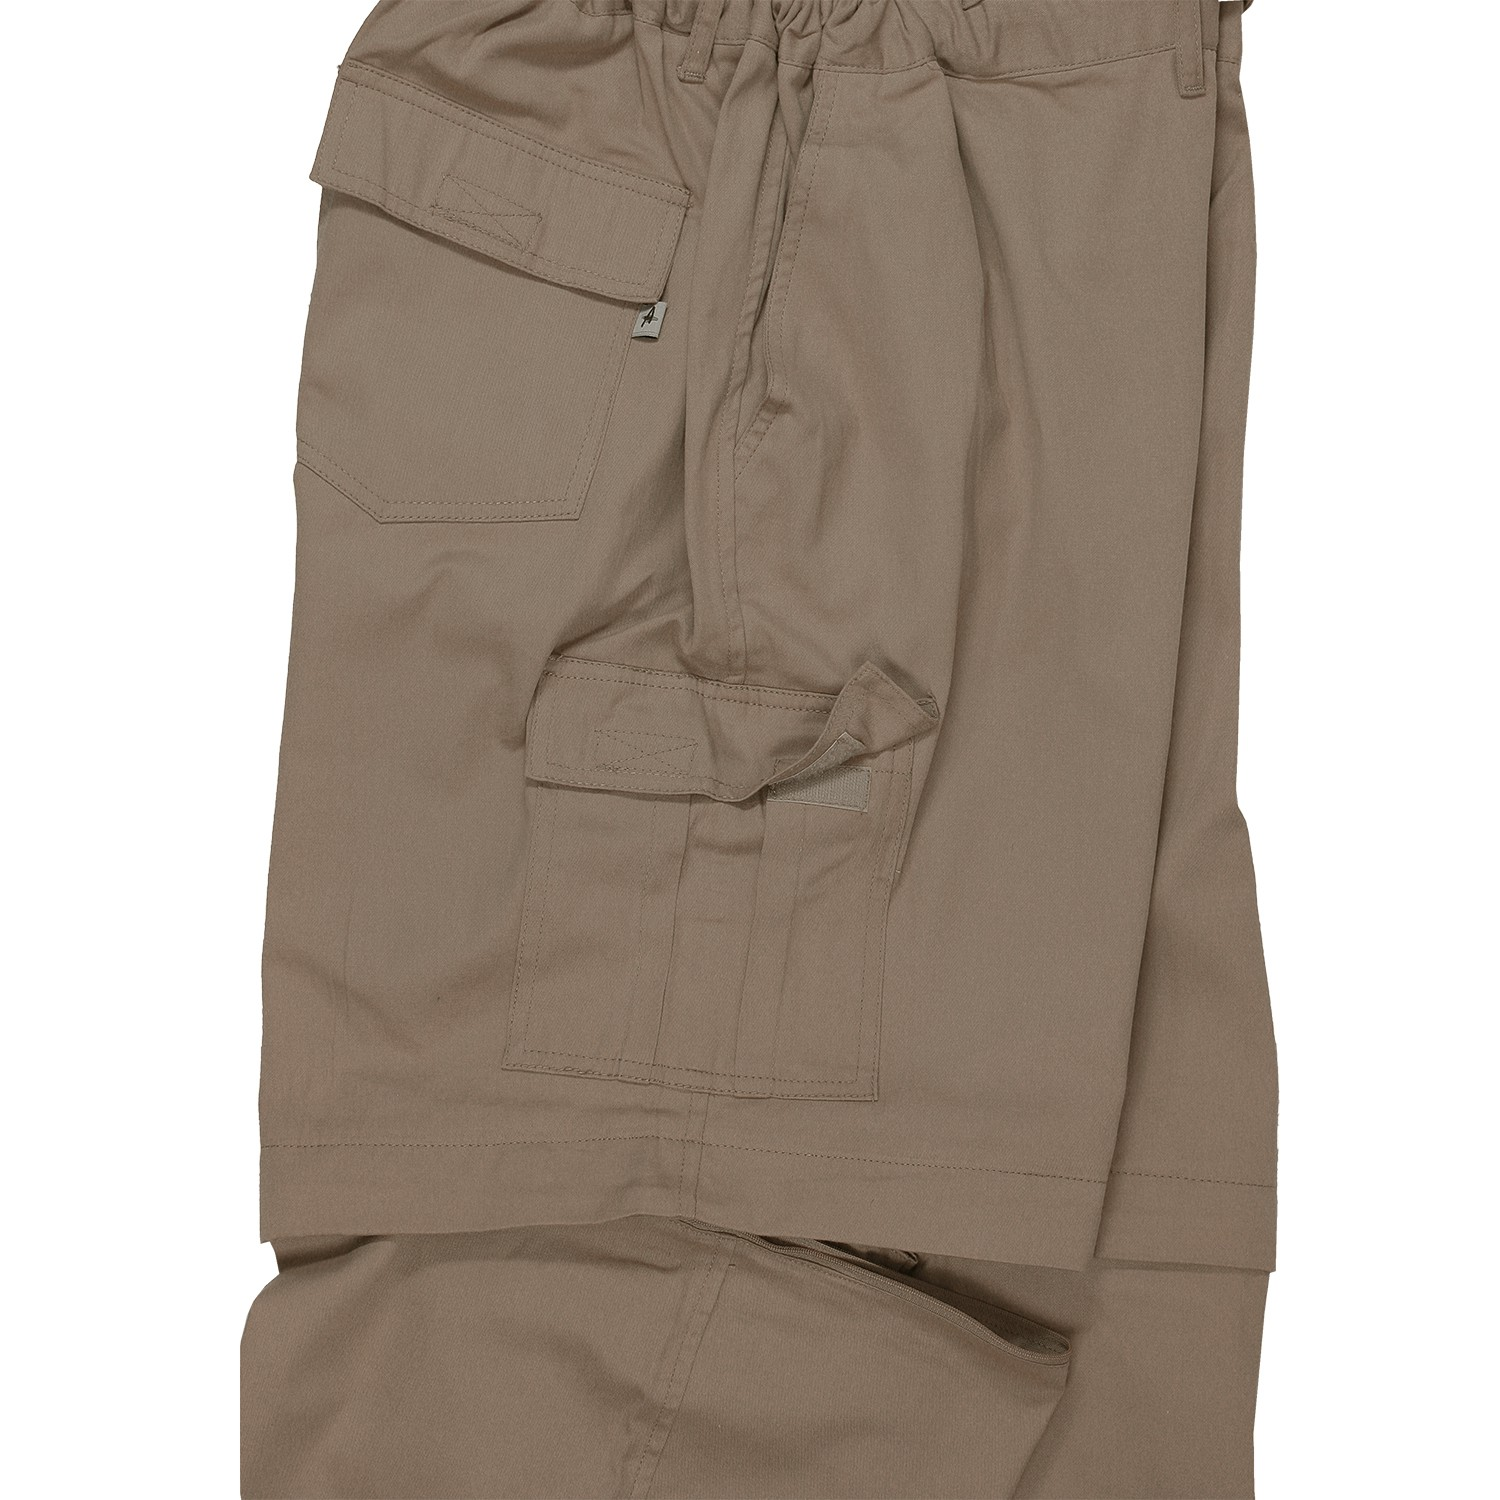 Detail Image to Khaki zip-off-trousers from Abraxas in oversizes until 10XL